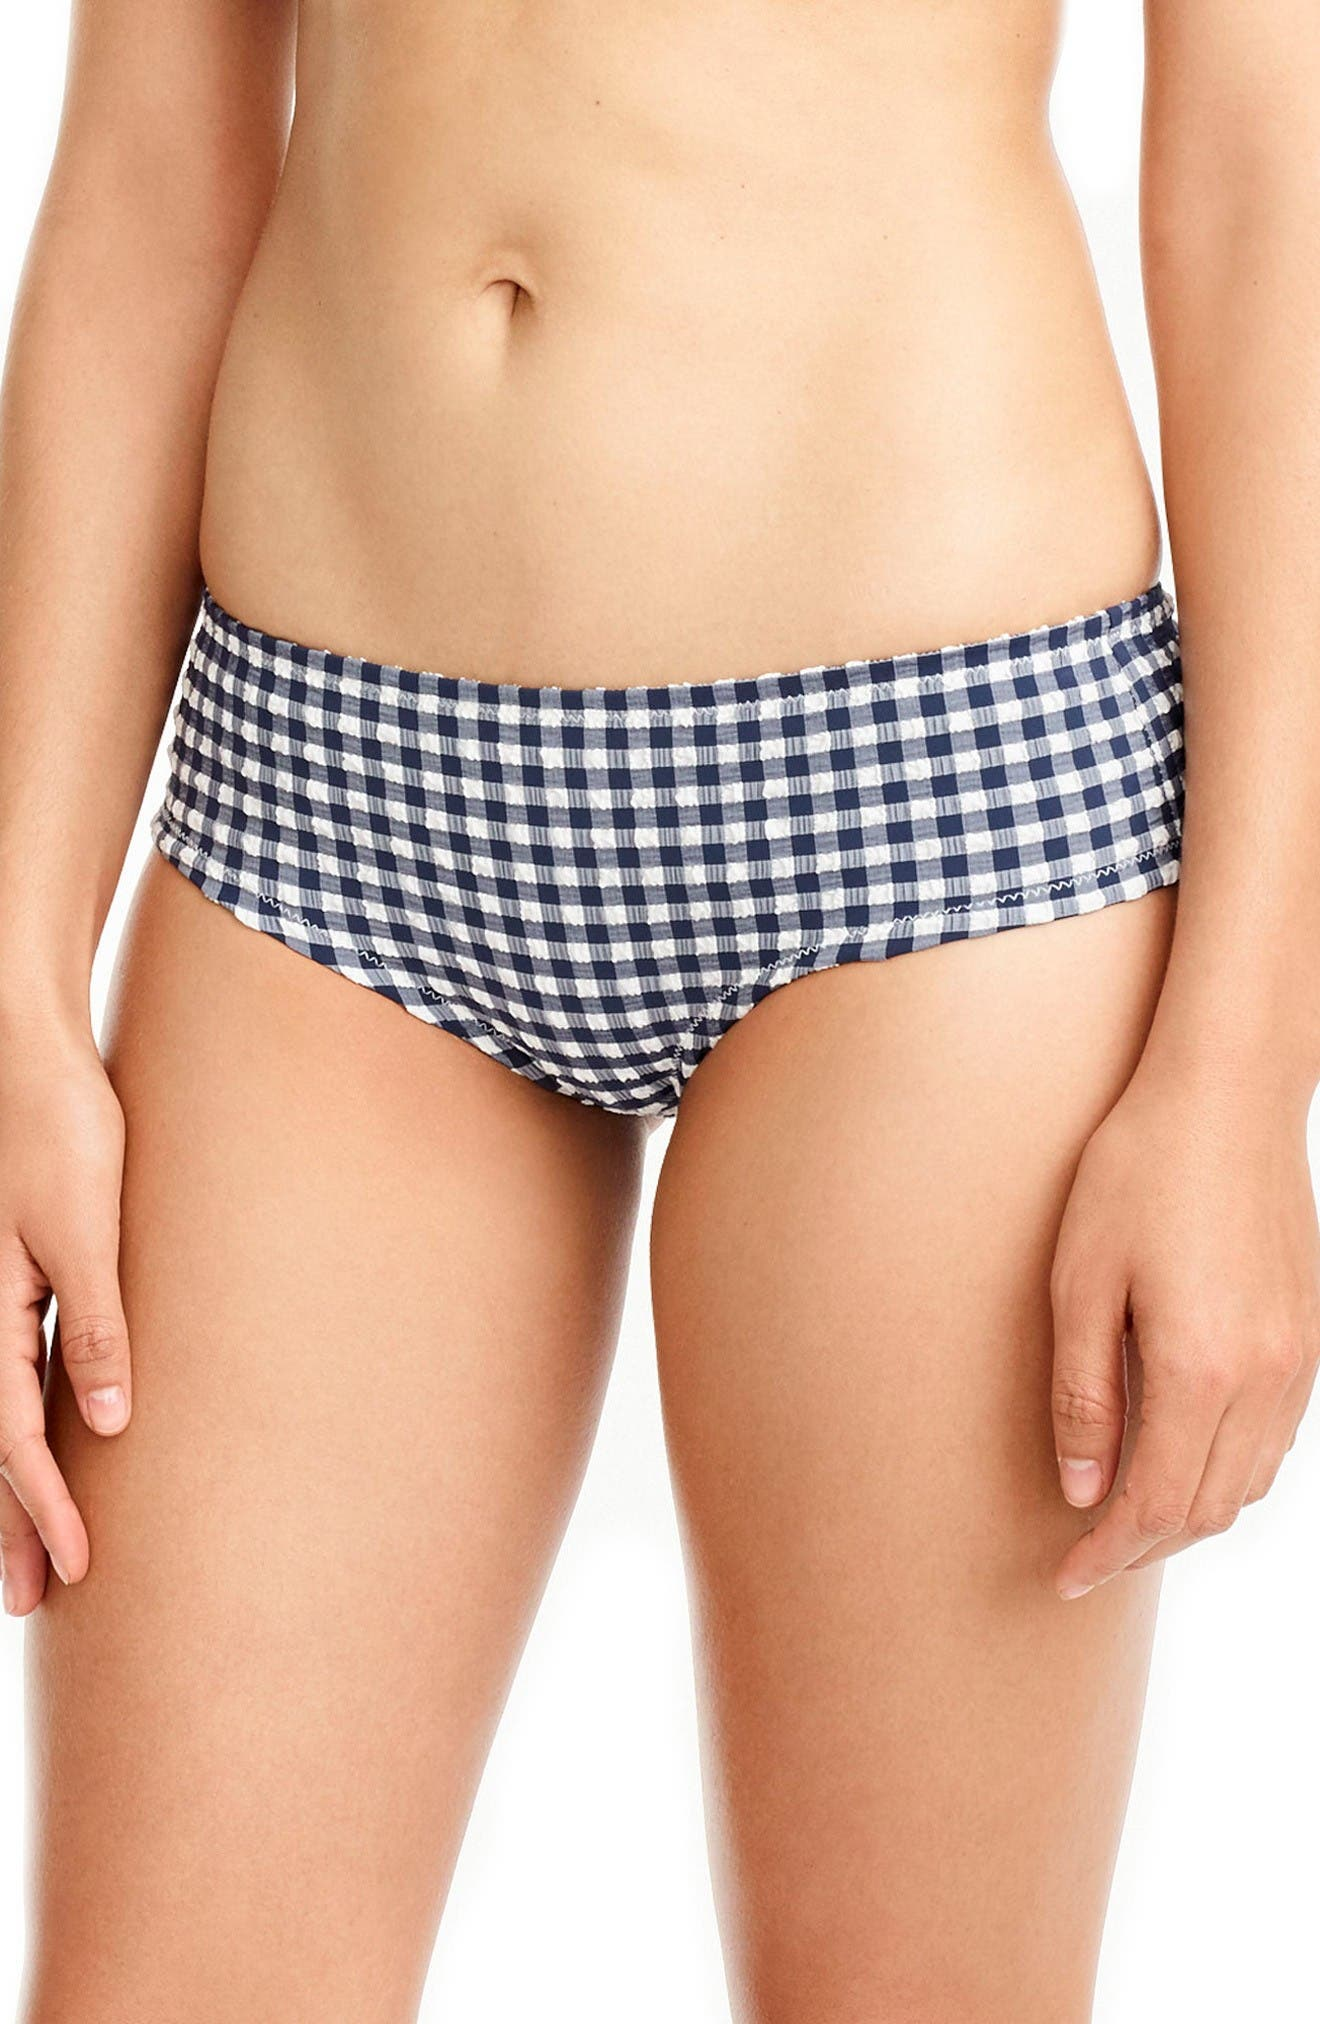 Main Image - J.Crew Gingham Boy Short Bottoms